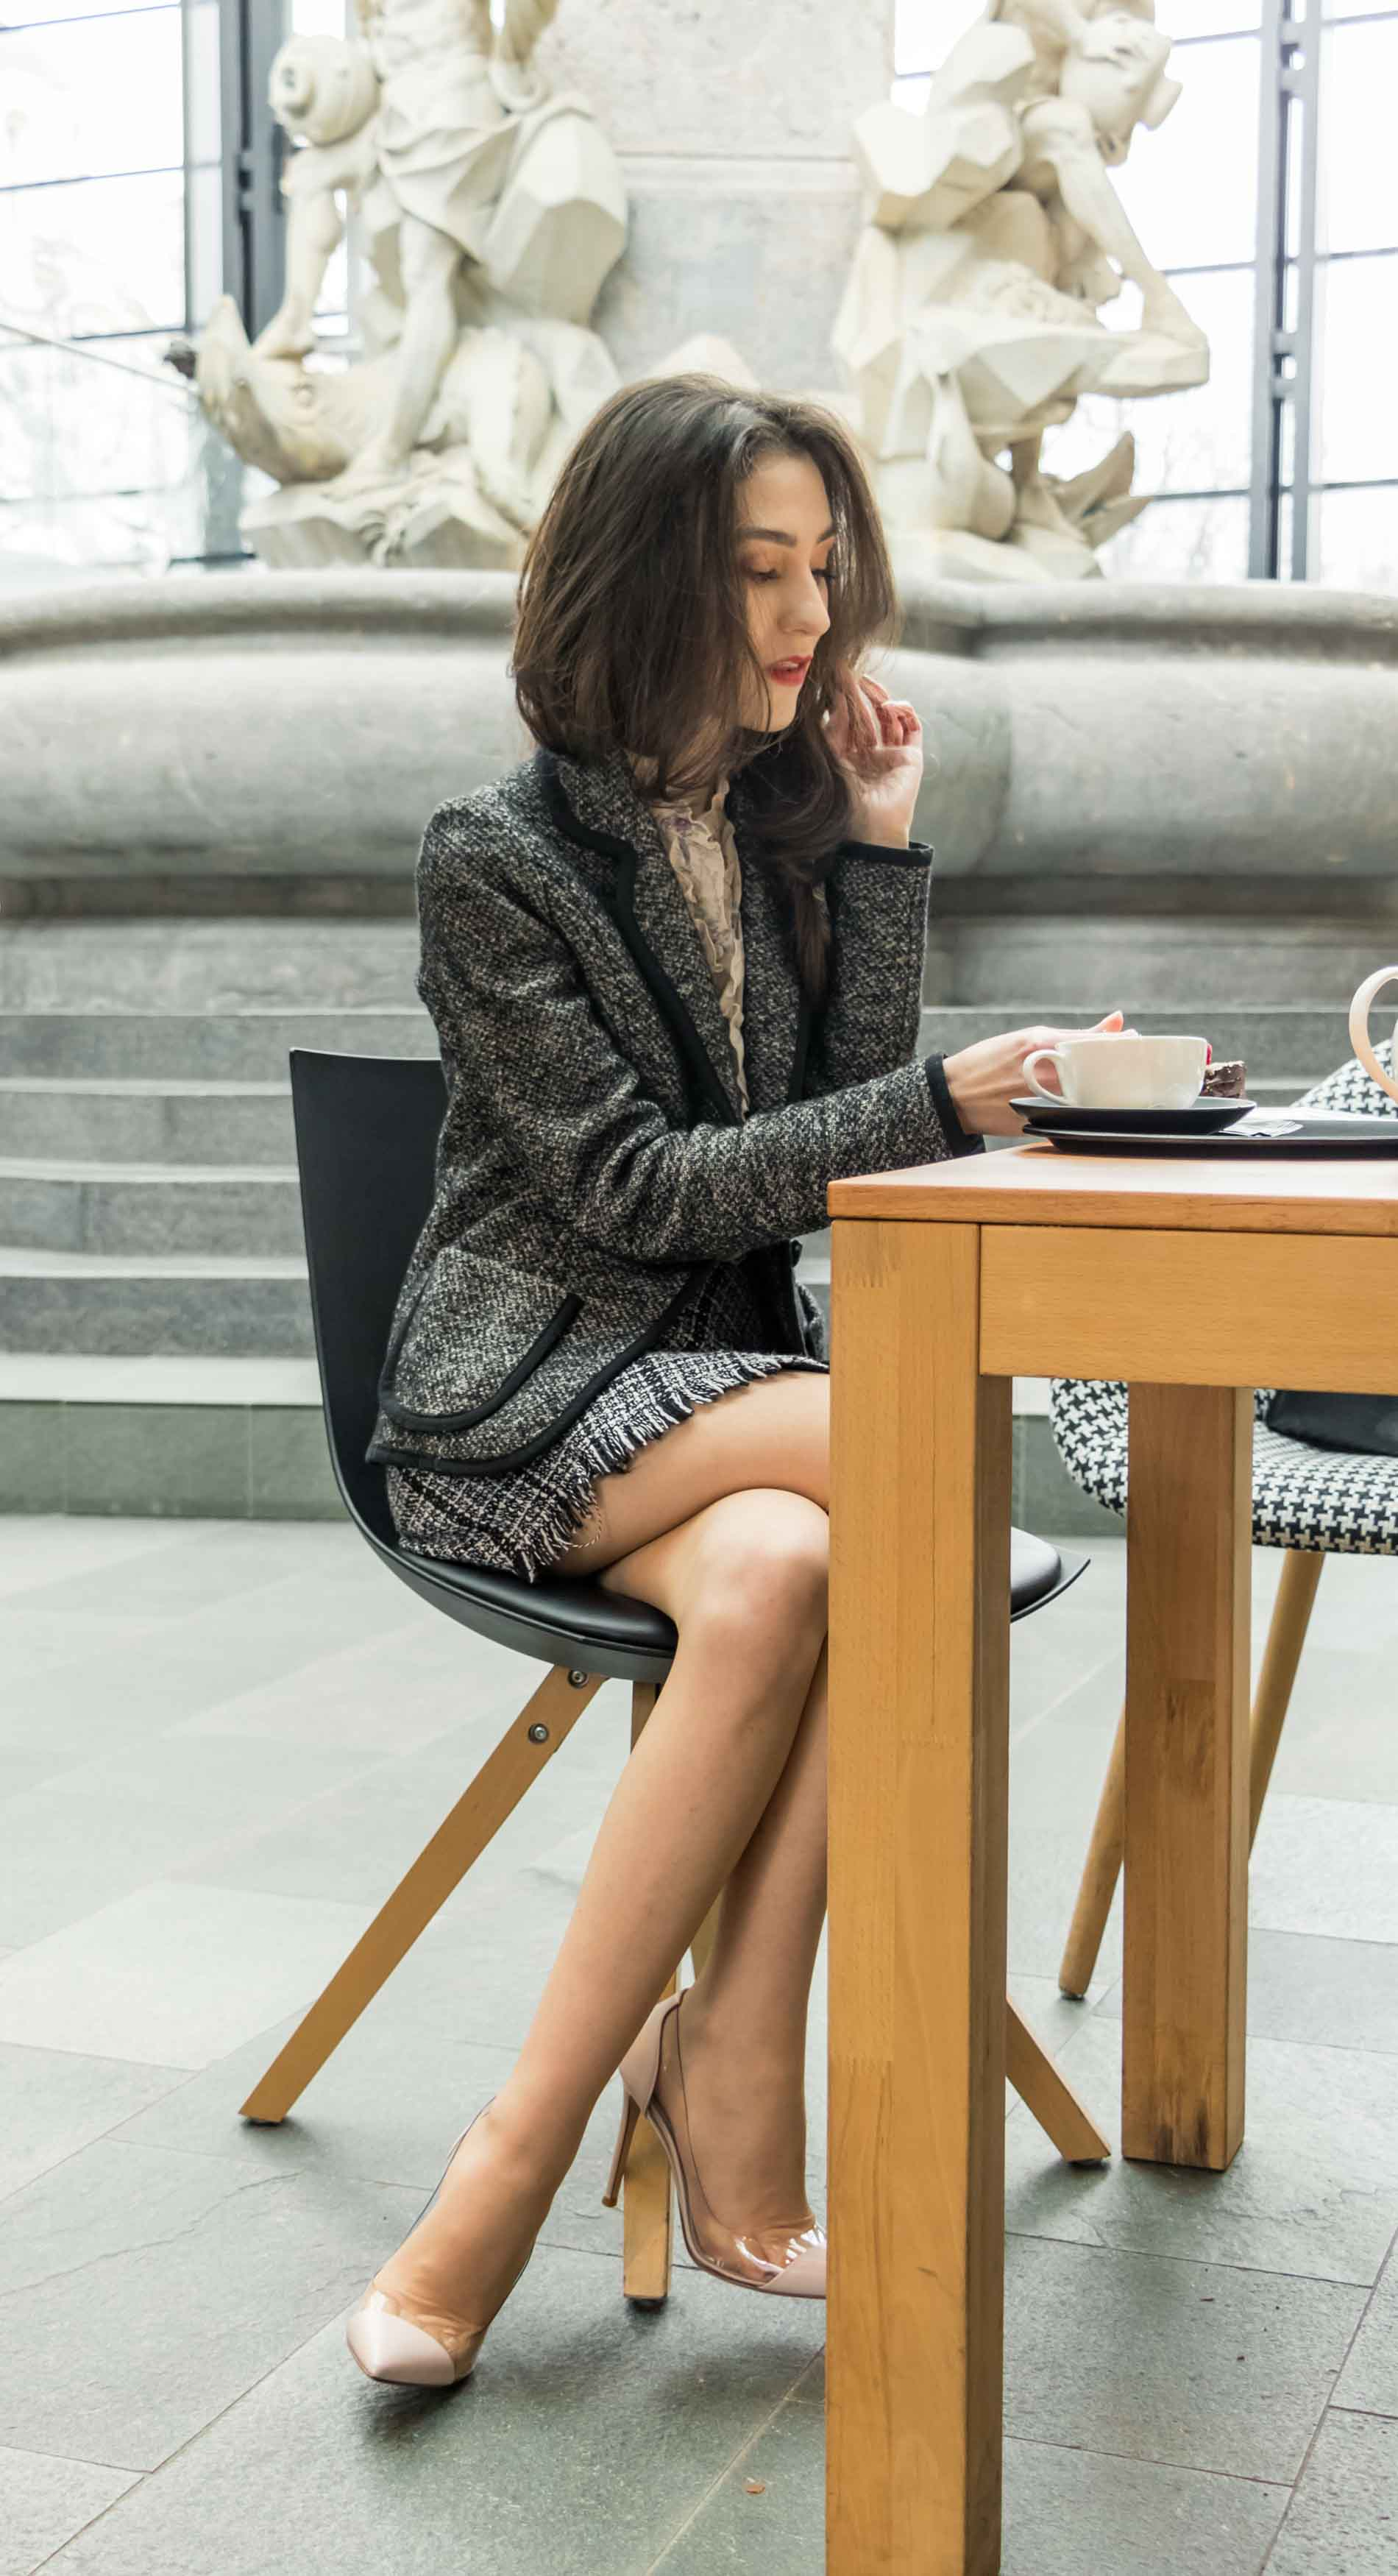 Fashion Blogger Veronika Lipar of Brunette from Wall Street wearing blush Gianvito Rossi Plexi 100 leather and PVC pump shoes, tweed plaid mini skirt from Storets, black and white Marella tweed jacket while drinking coffee